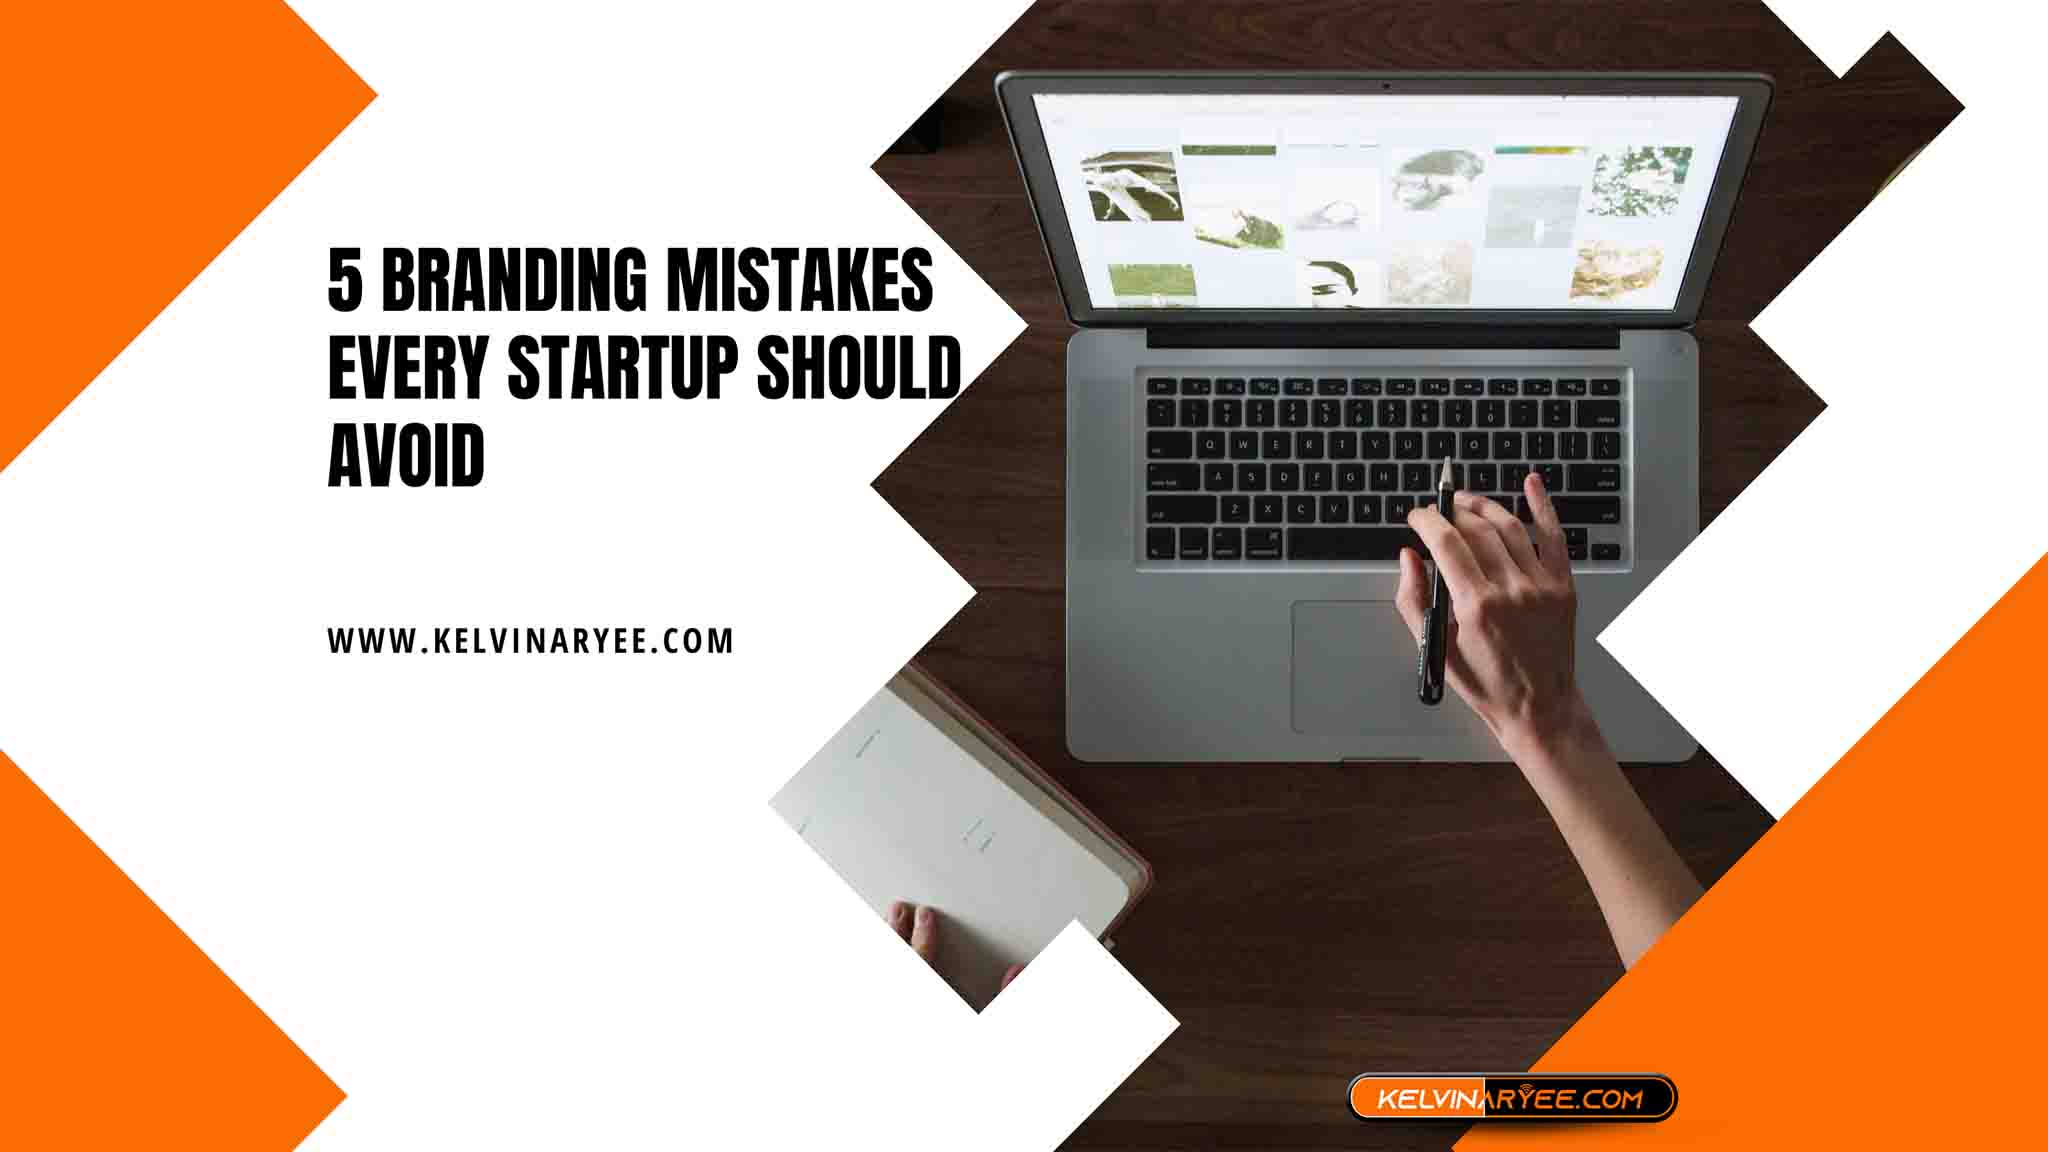 5 Branding Mistakes Every Startup Should Avoid